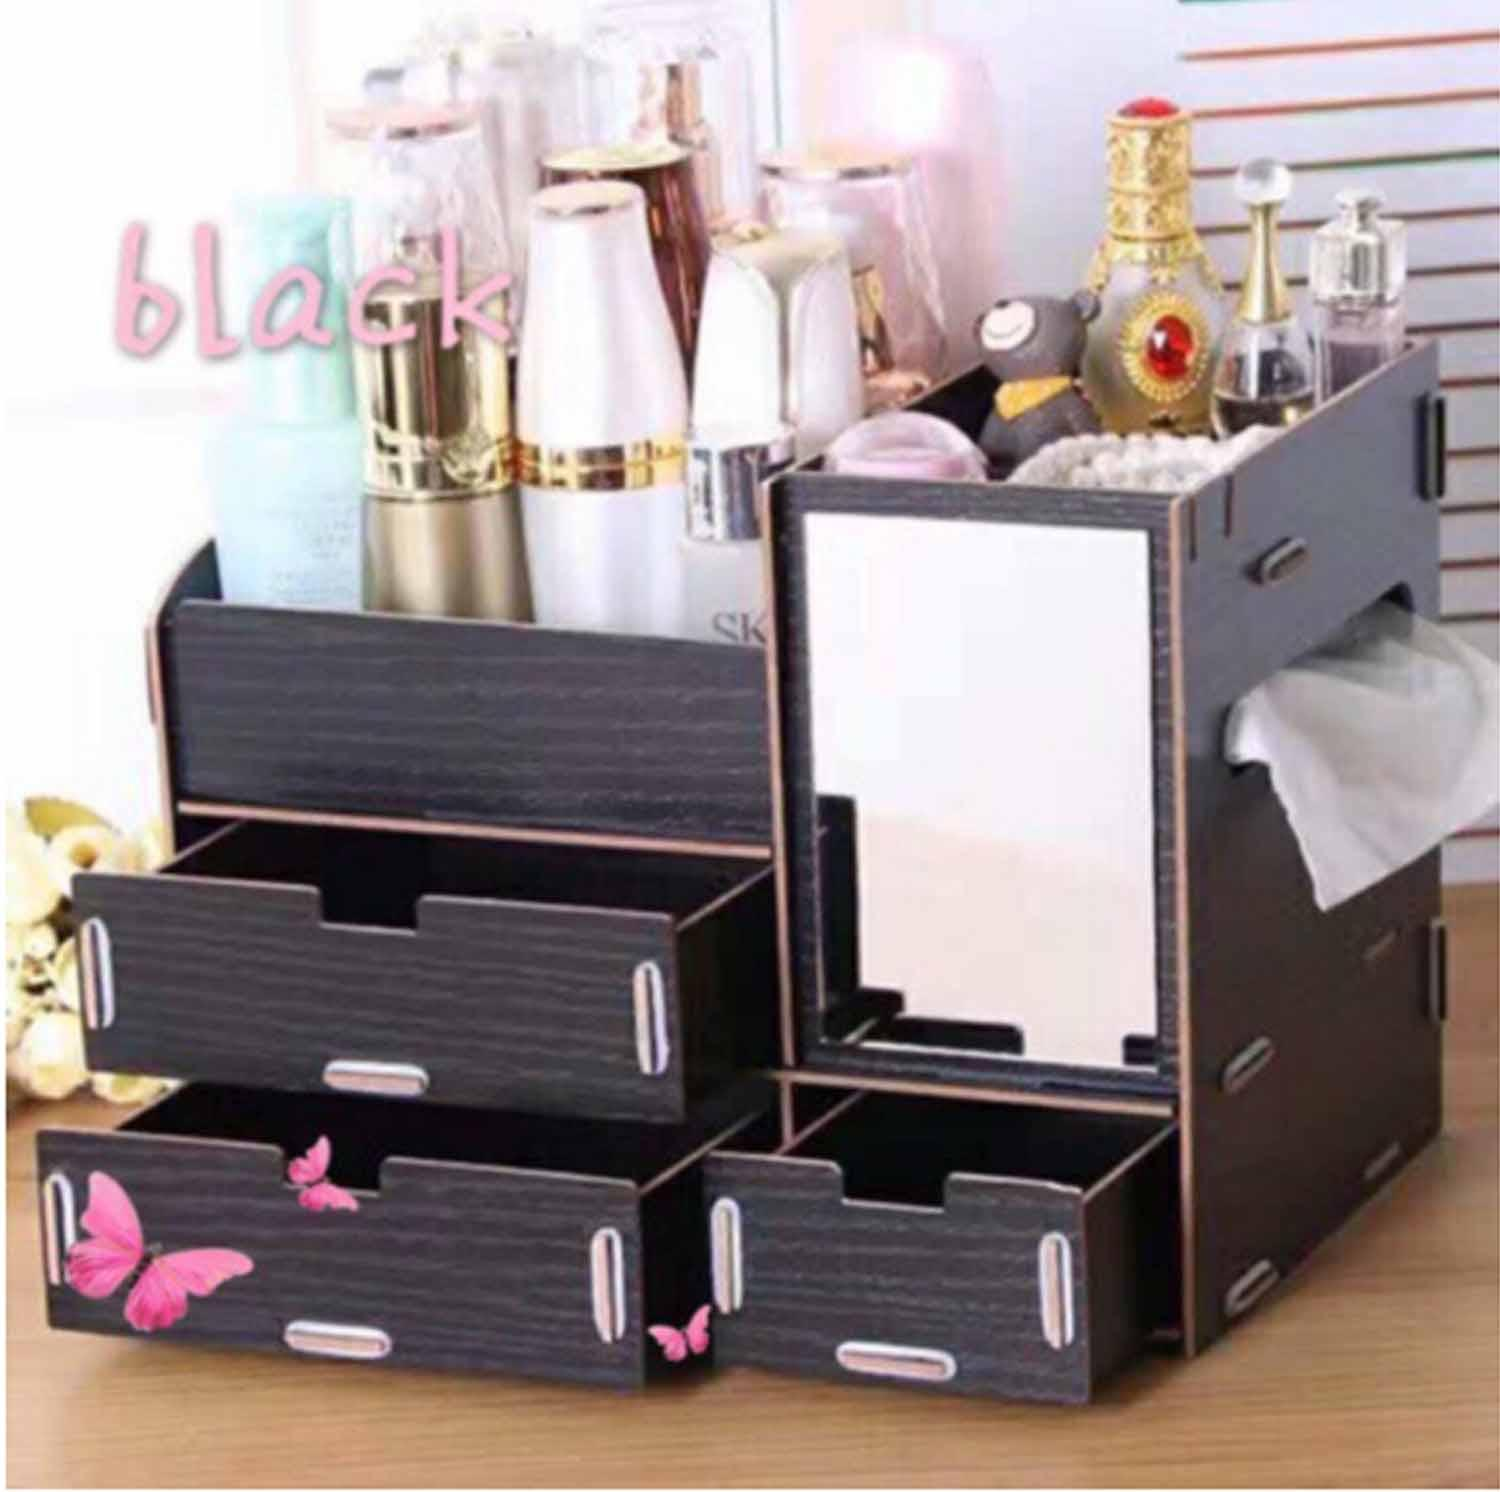 DIY Wooden Makeup make up Organizer with Mirror (Black) Philippines